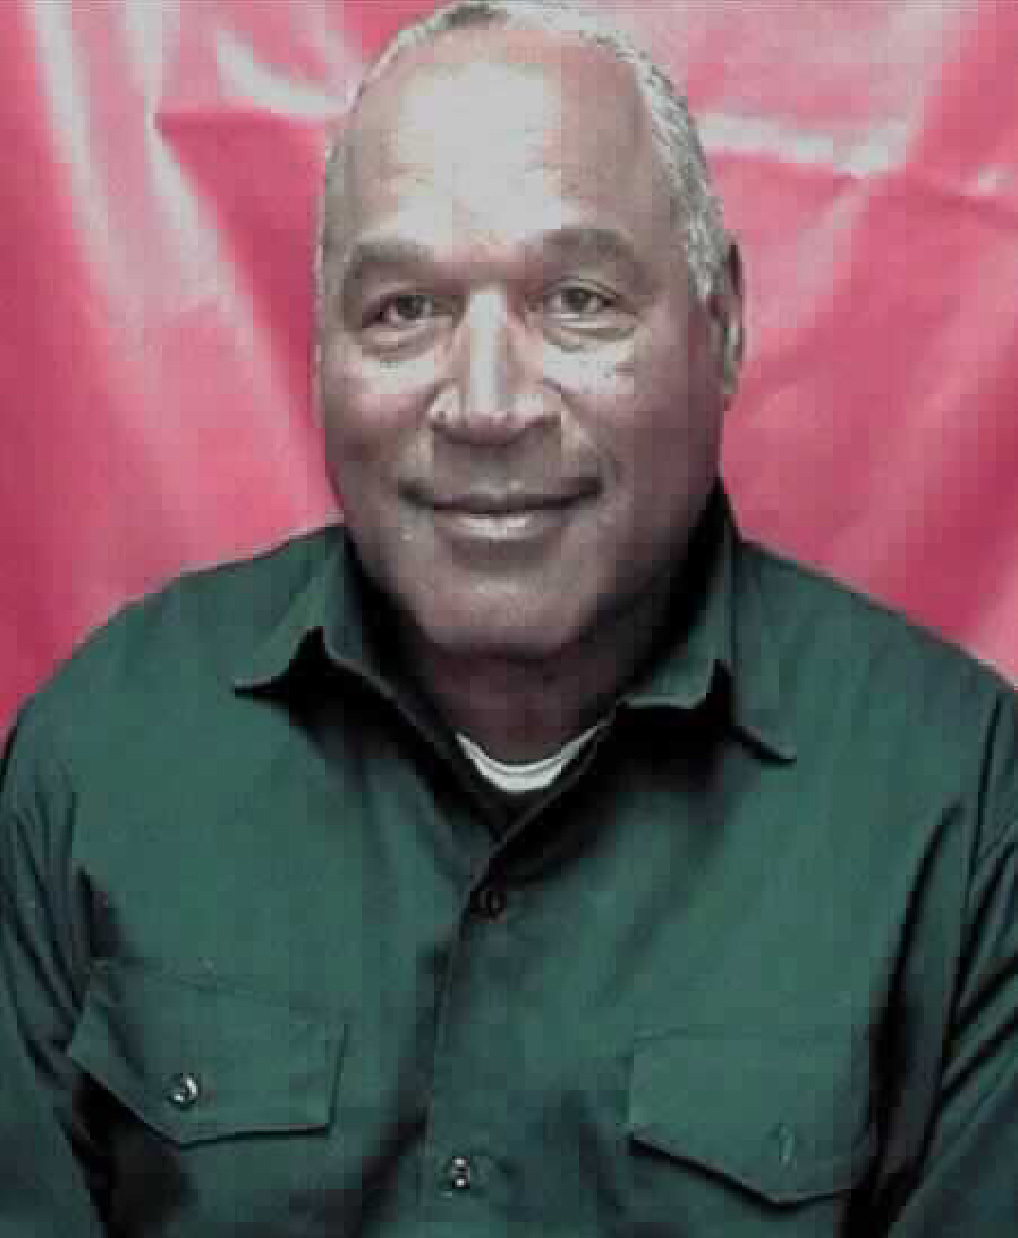 This photo provided by the Nevada Department of Corrections shows O.J. Simpson. He is serving a sentence of nine to 33 years in a Nevada prison for a 2007 armed robbery and kidnapping conviction. He is eligible for parole next year.